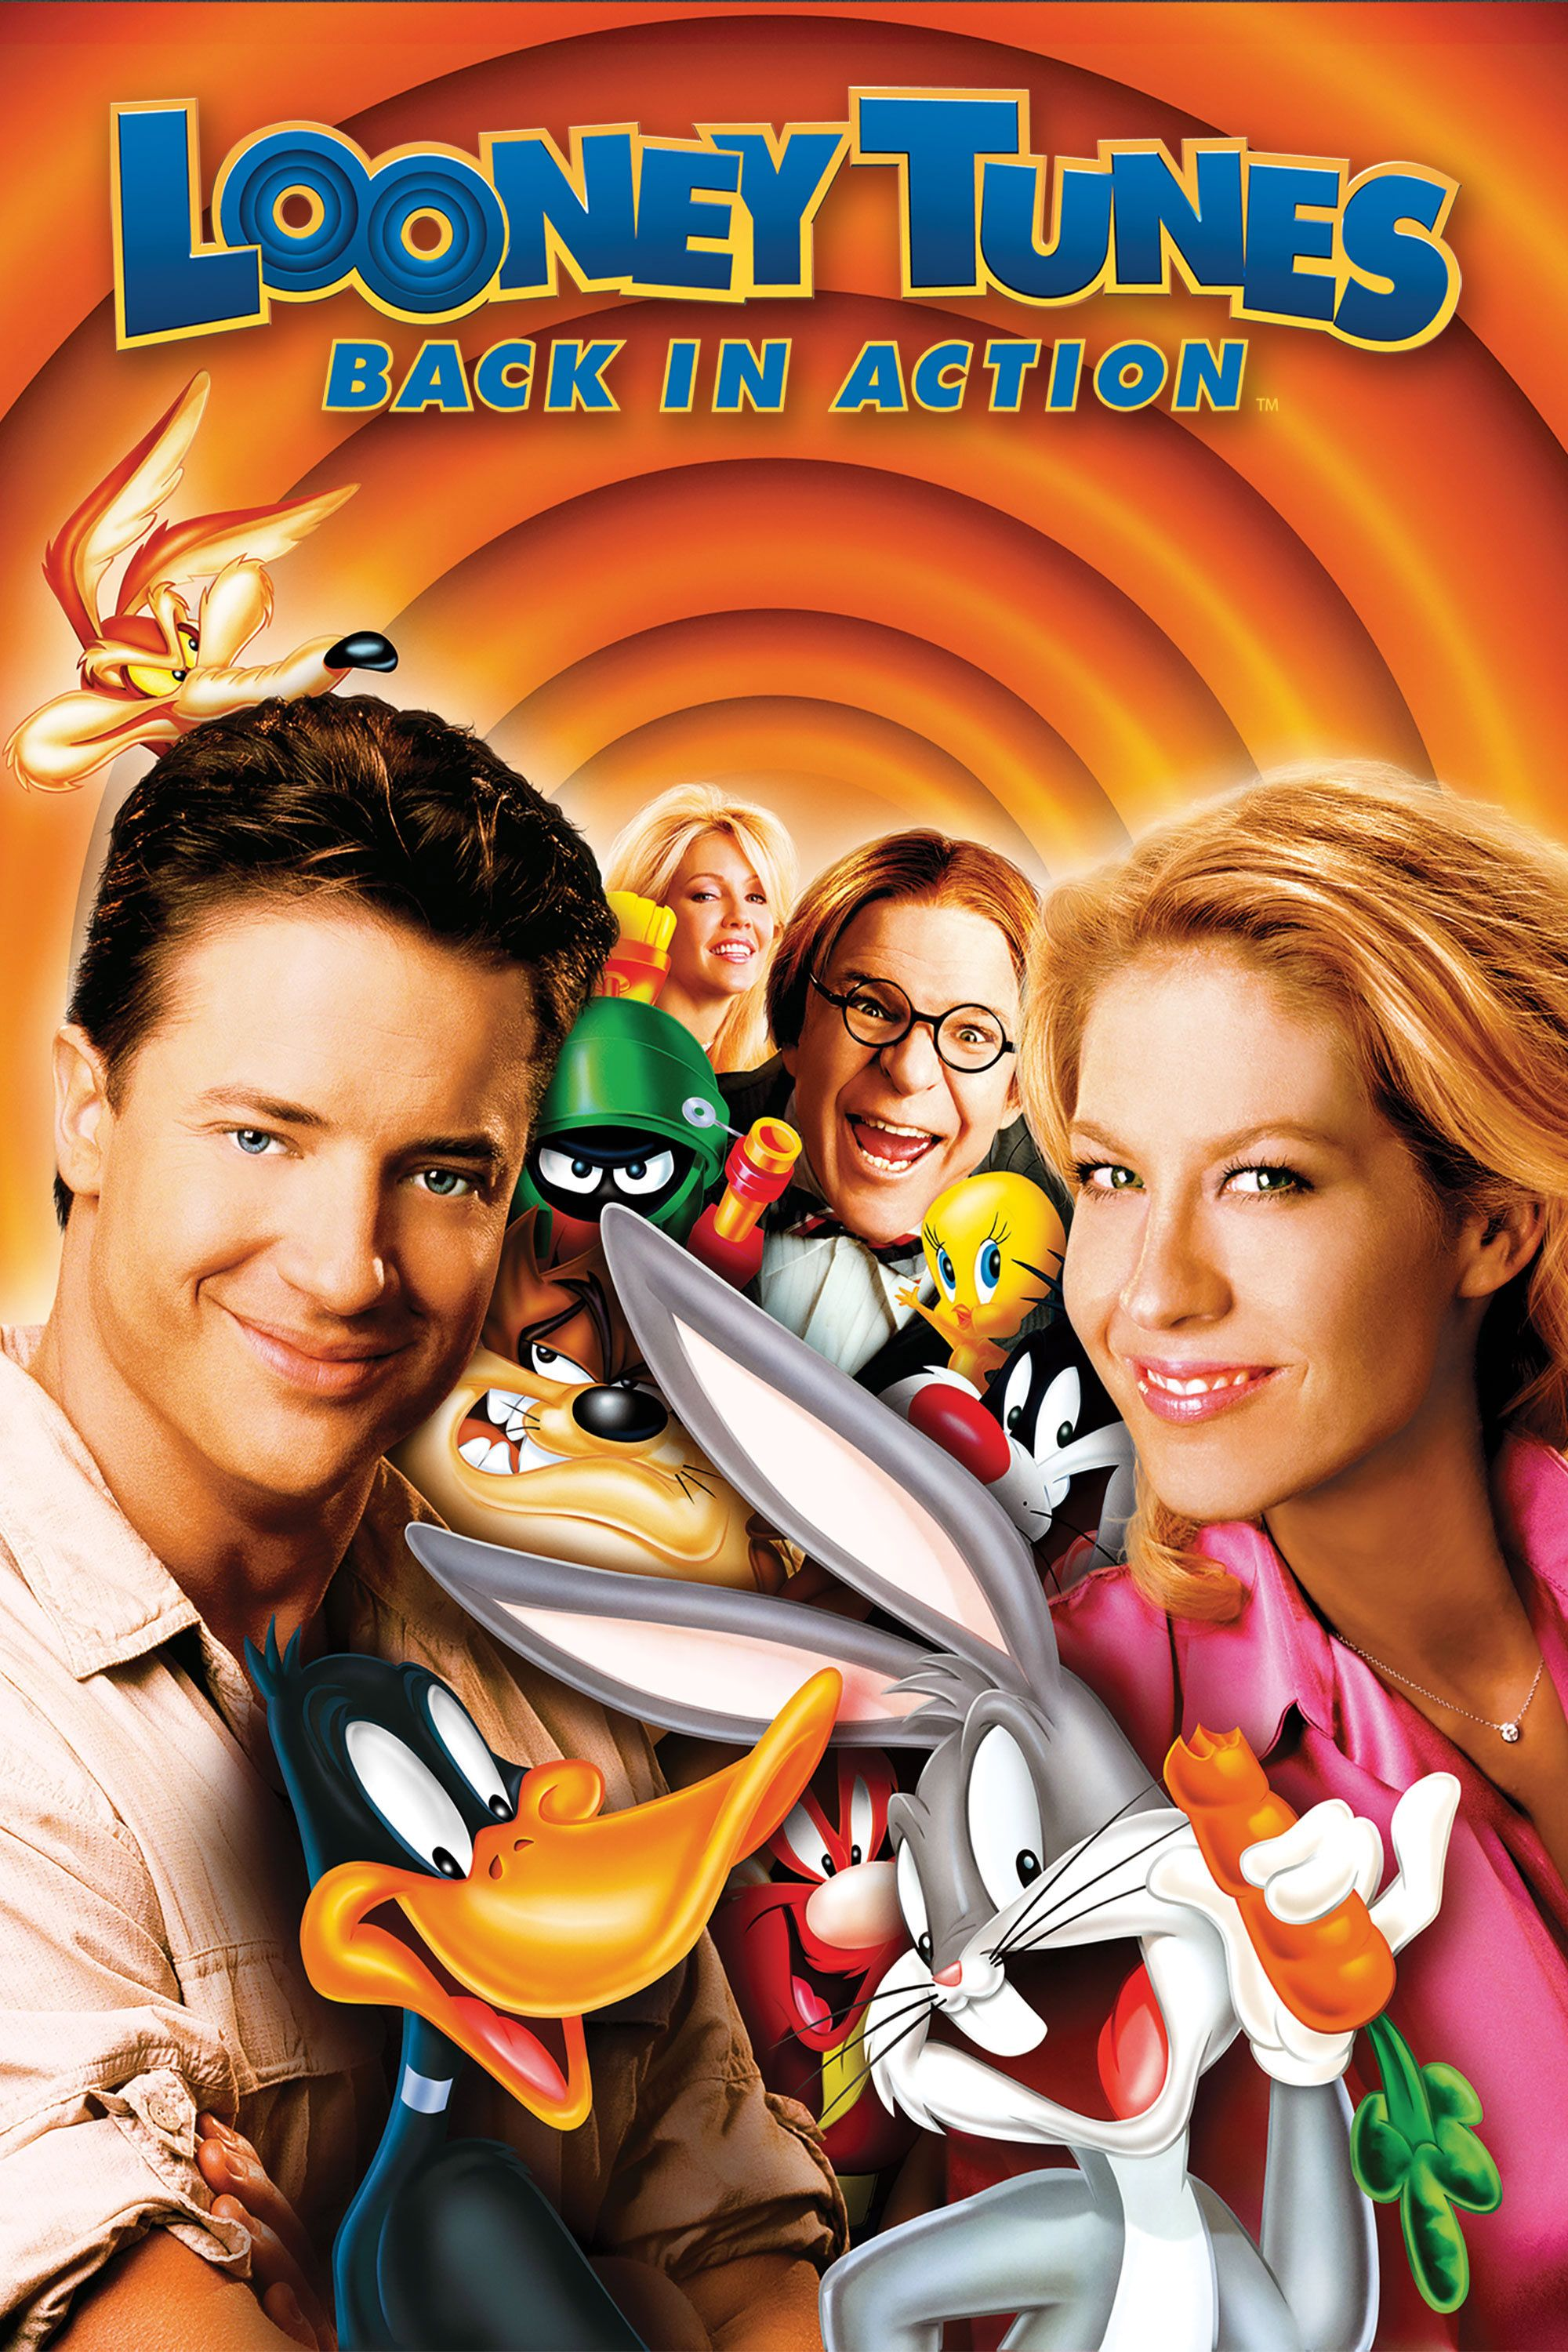 Looney tunes back in action full movie in hindi